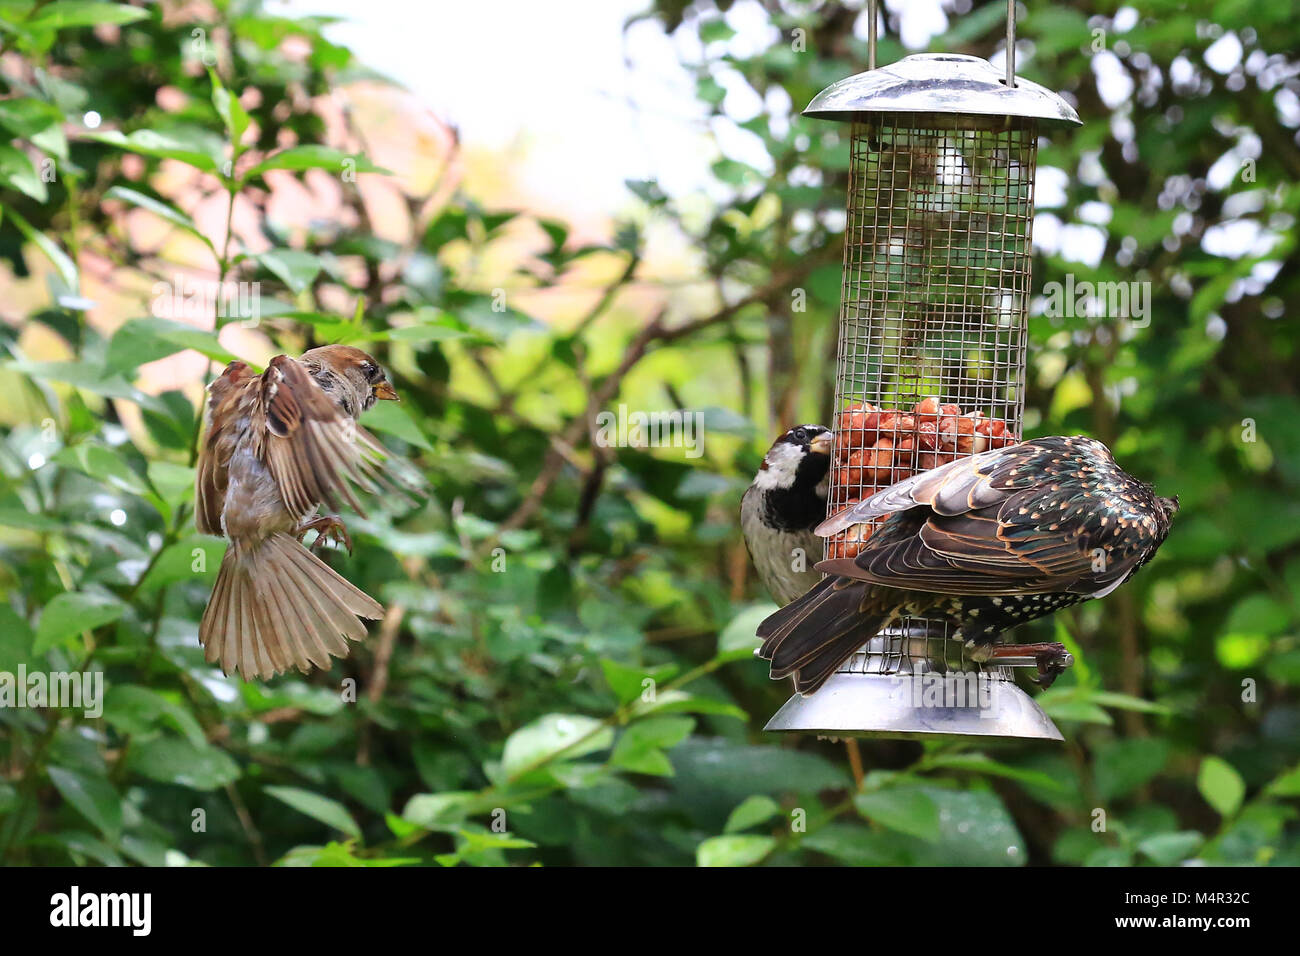 Garden Birds hungrily devouring peanuts from a garden bird feeder. - Stock Image